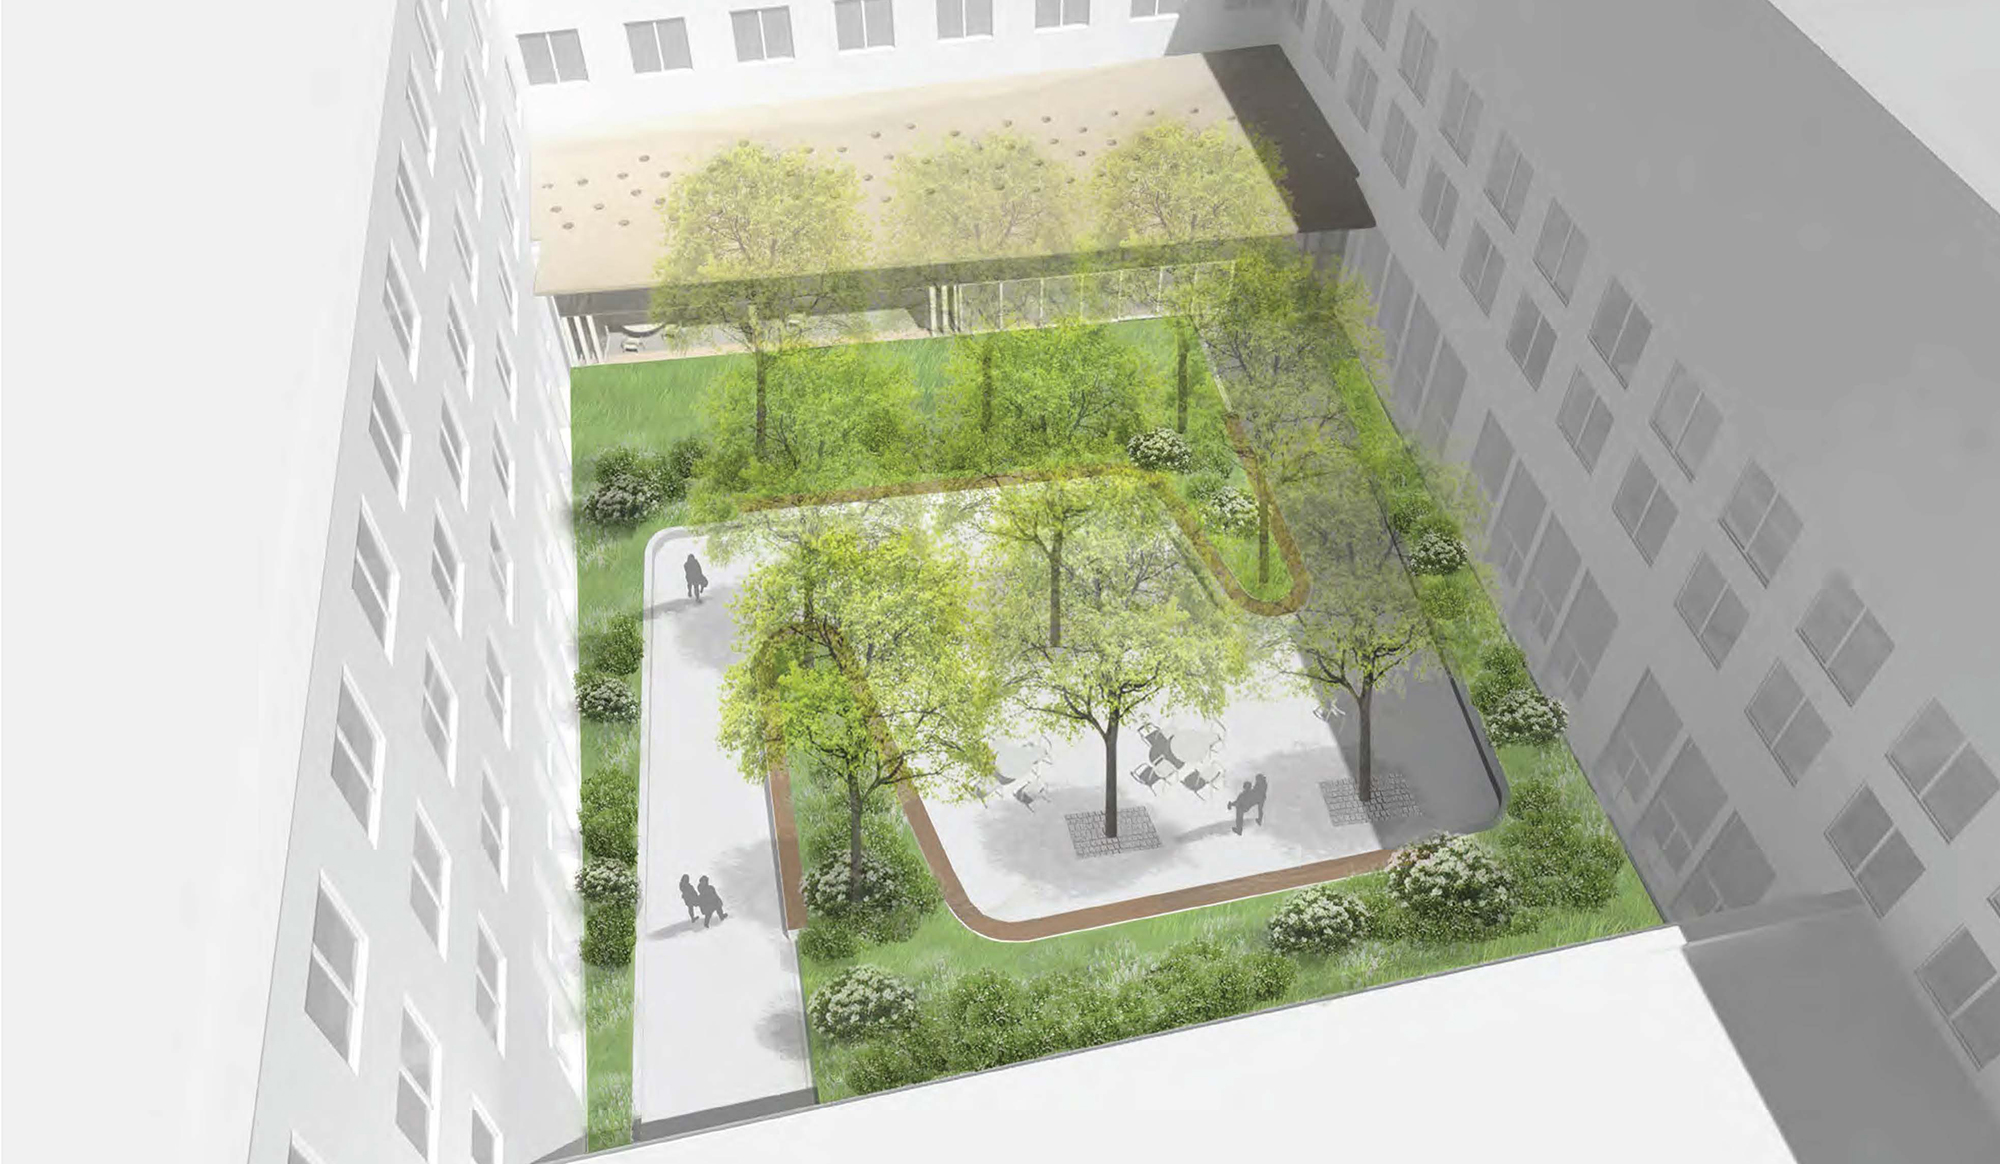 Aerial view of proposed courtyard. Image: KVA